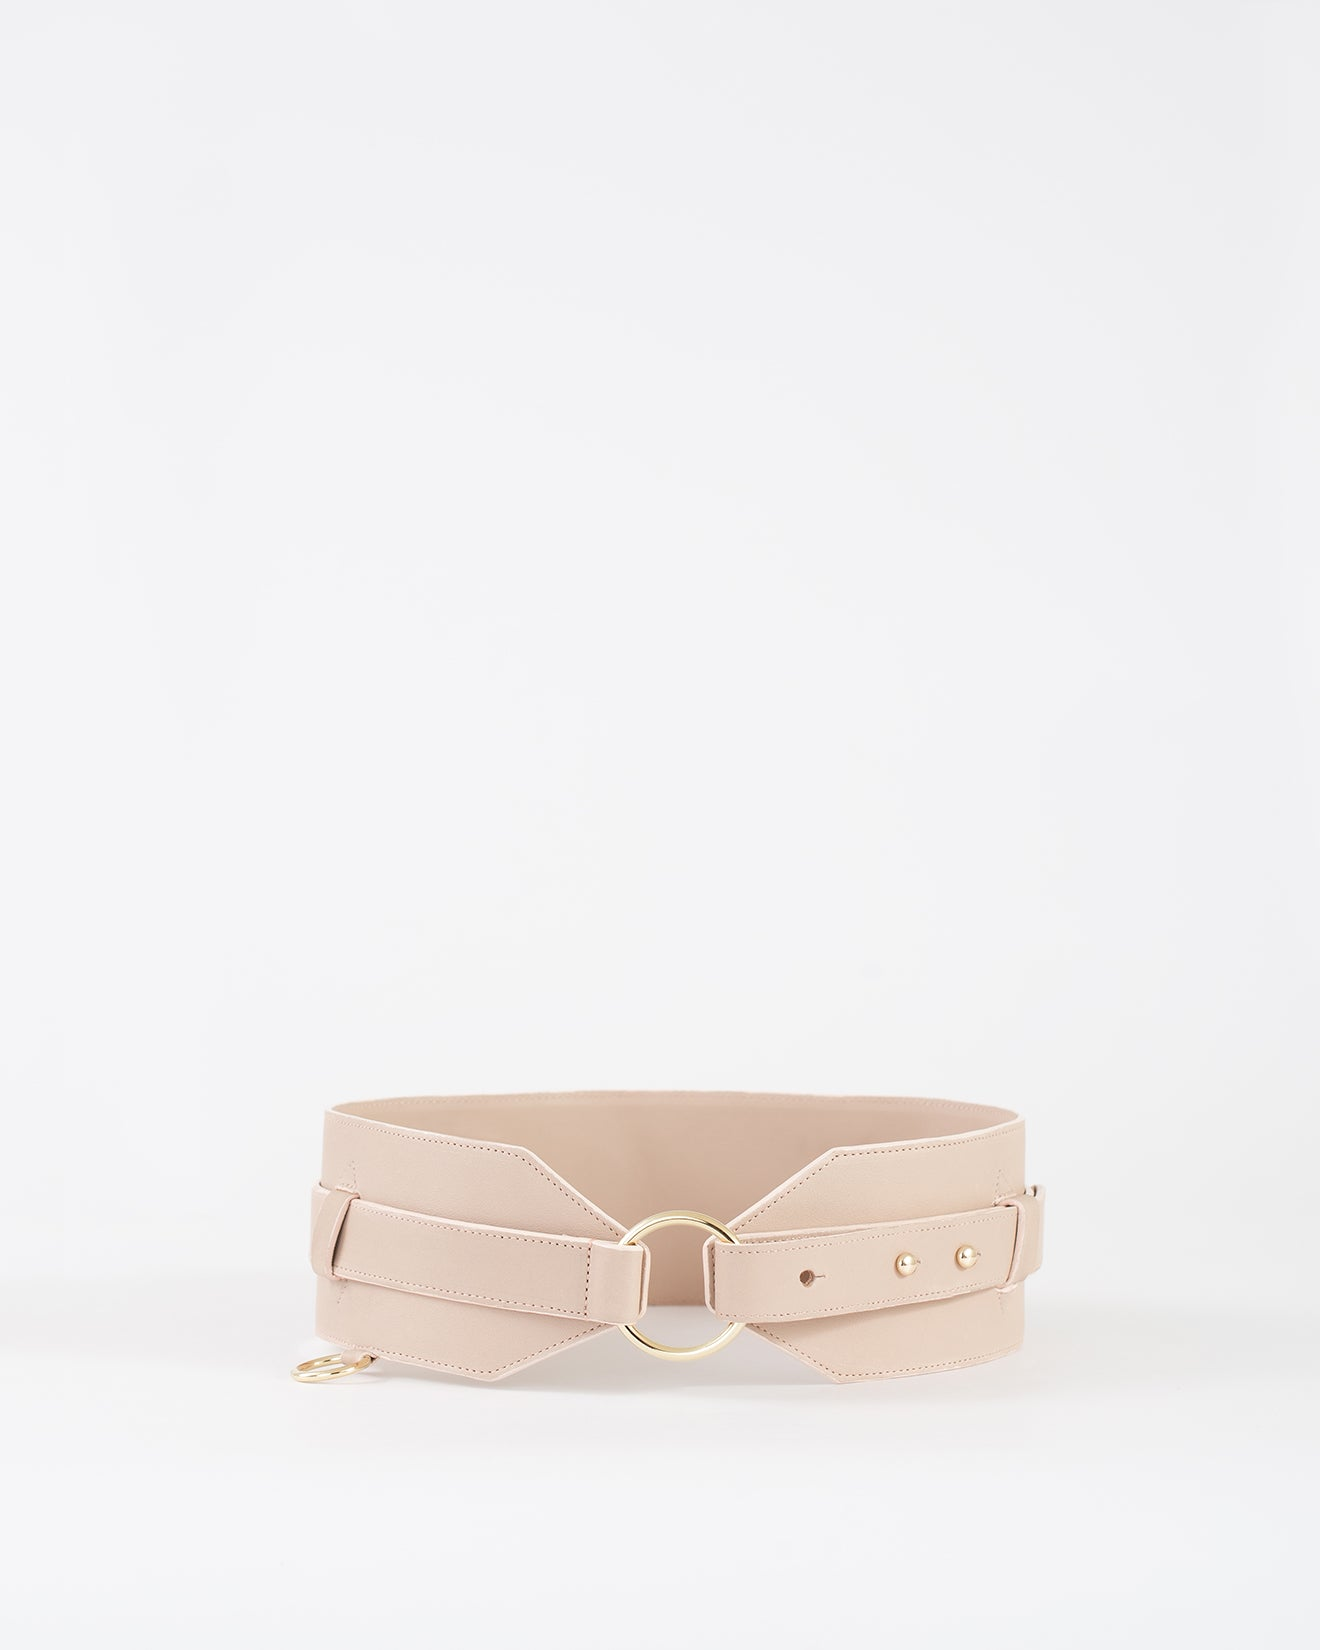 Doncello belt black